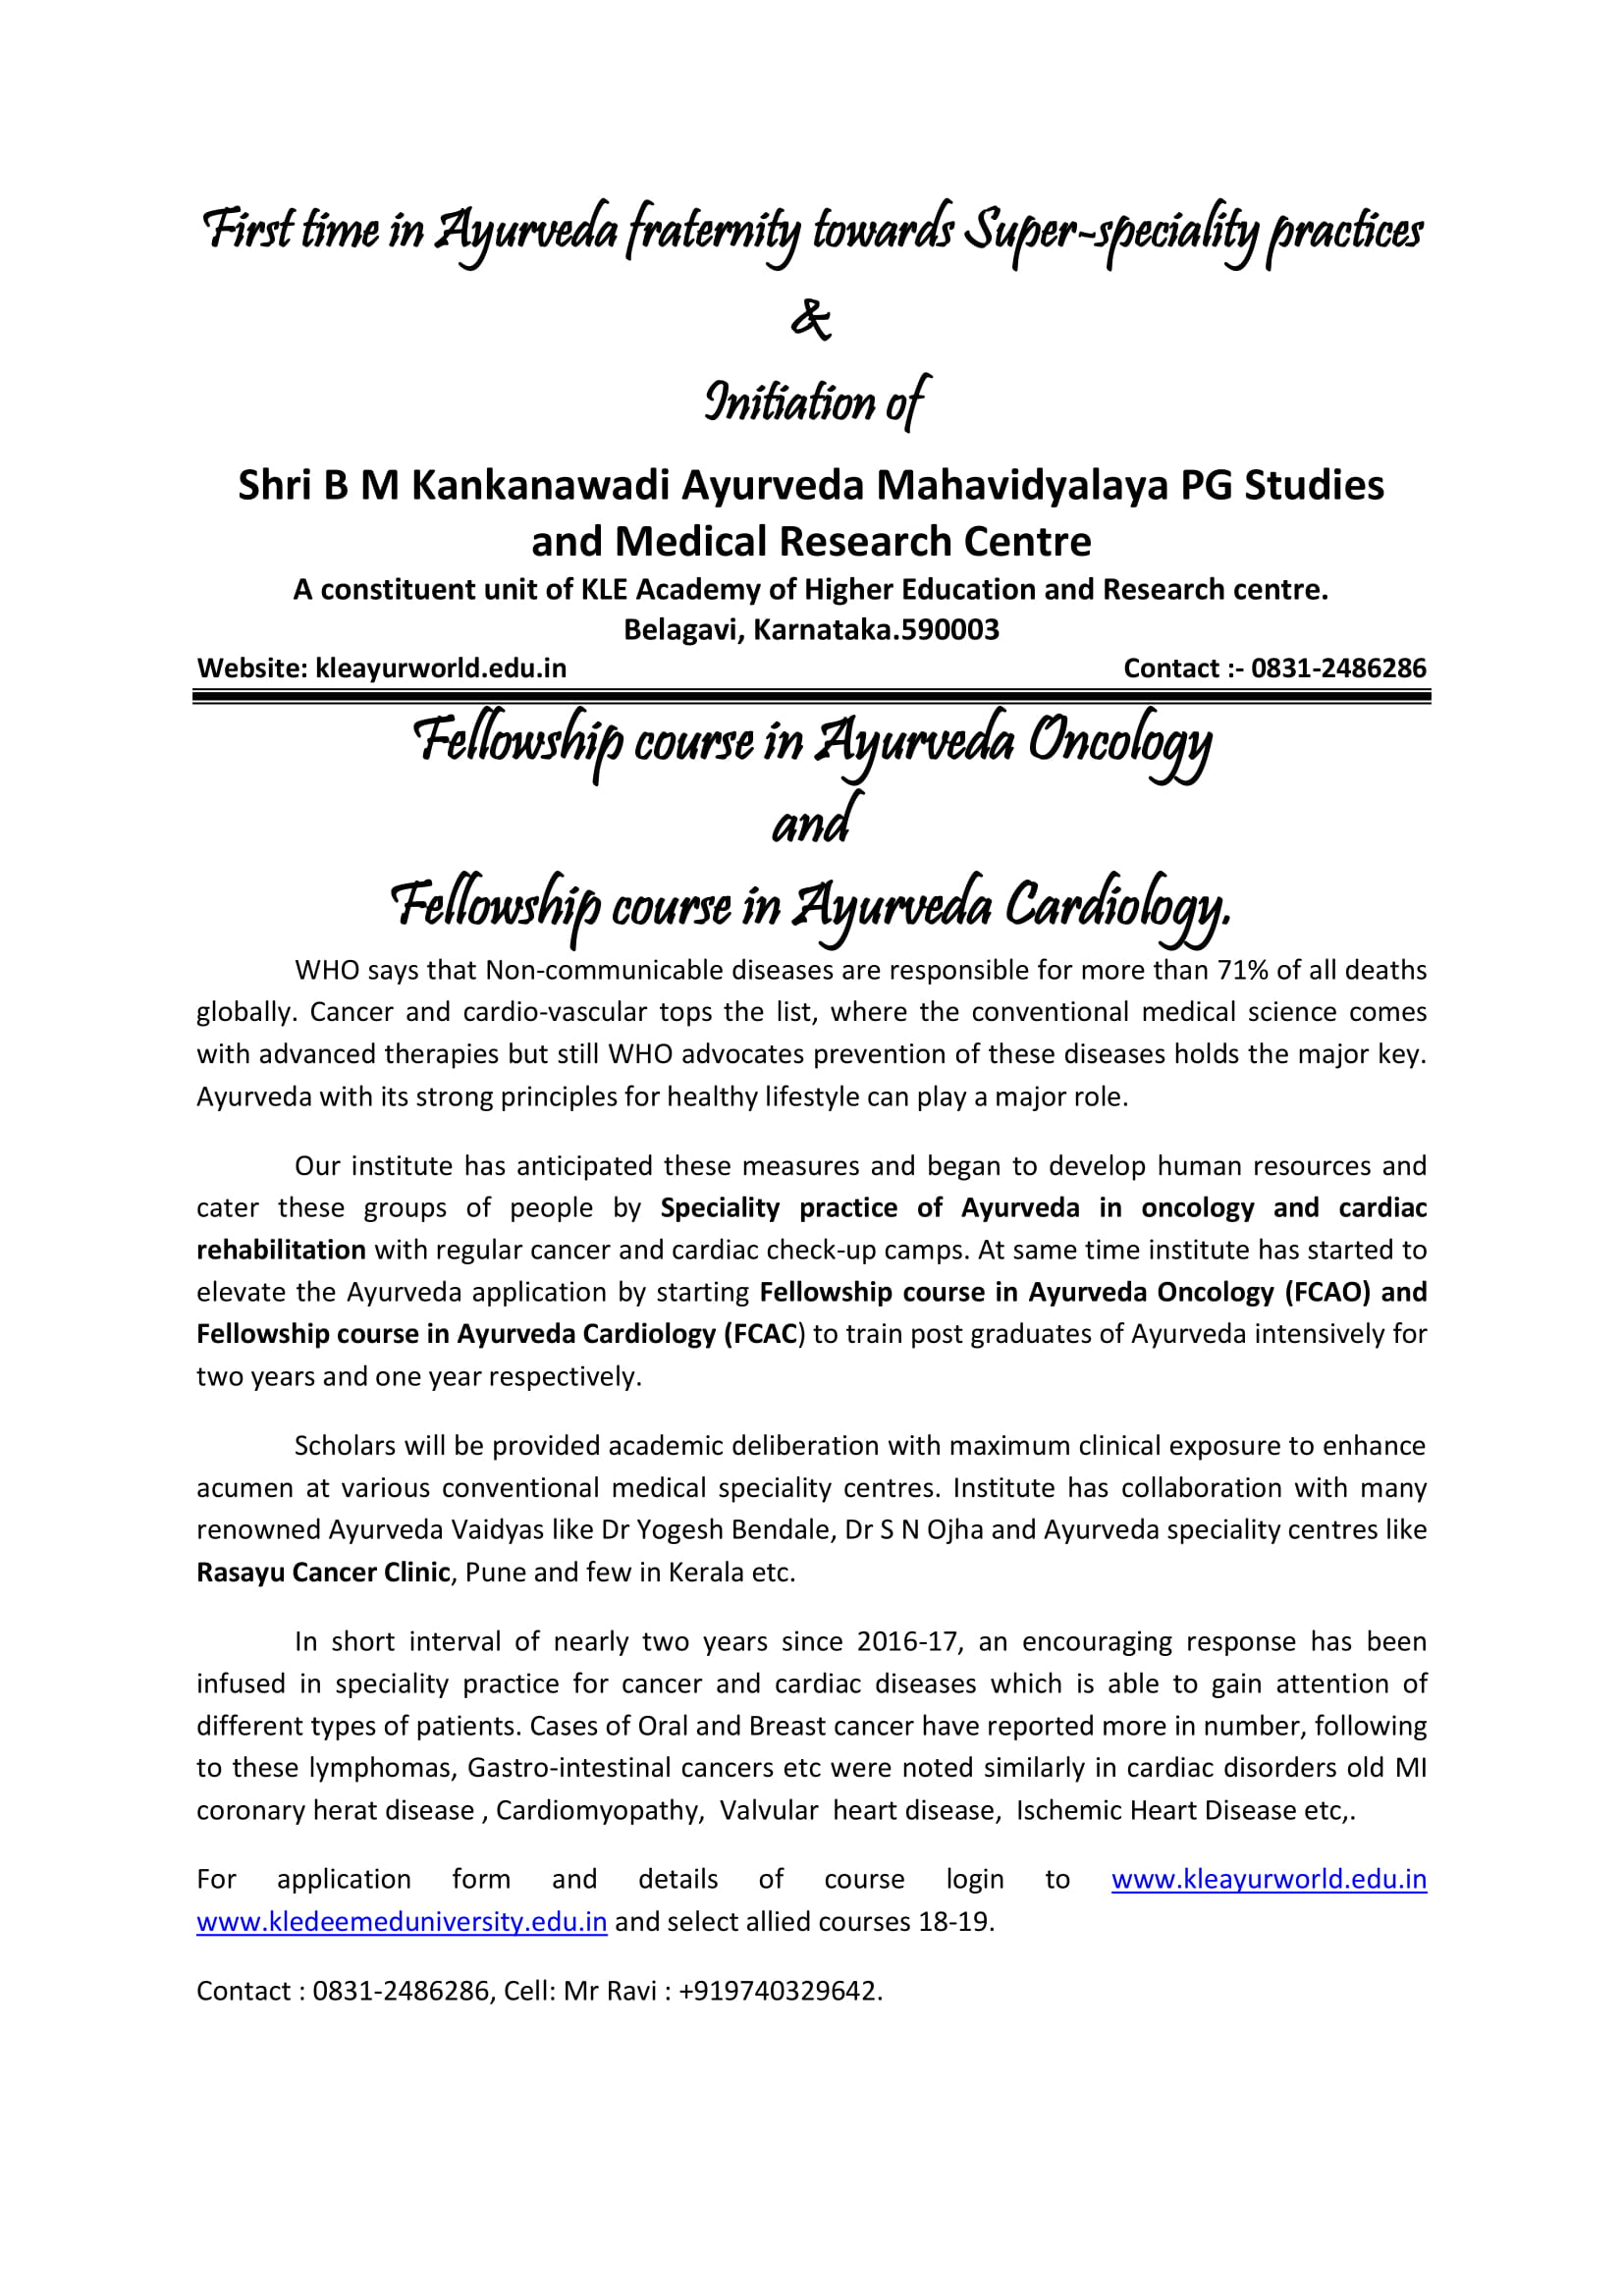 Fellowship Course In Ayurveda Oncology Cardiology Kle Ayur World